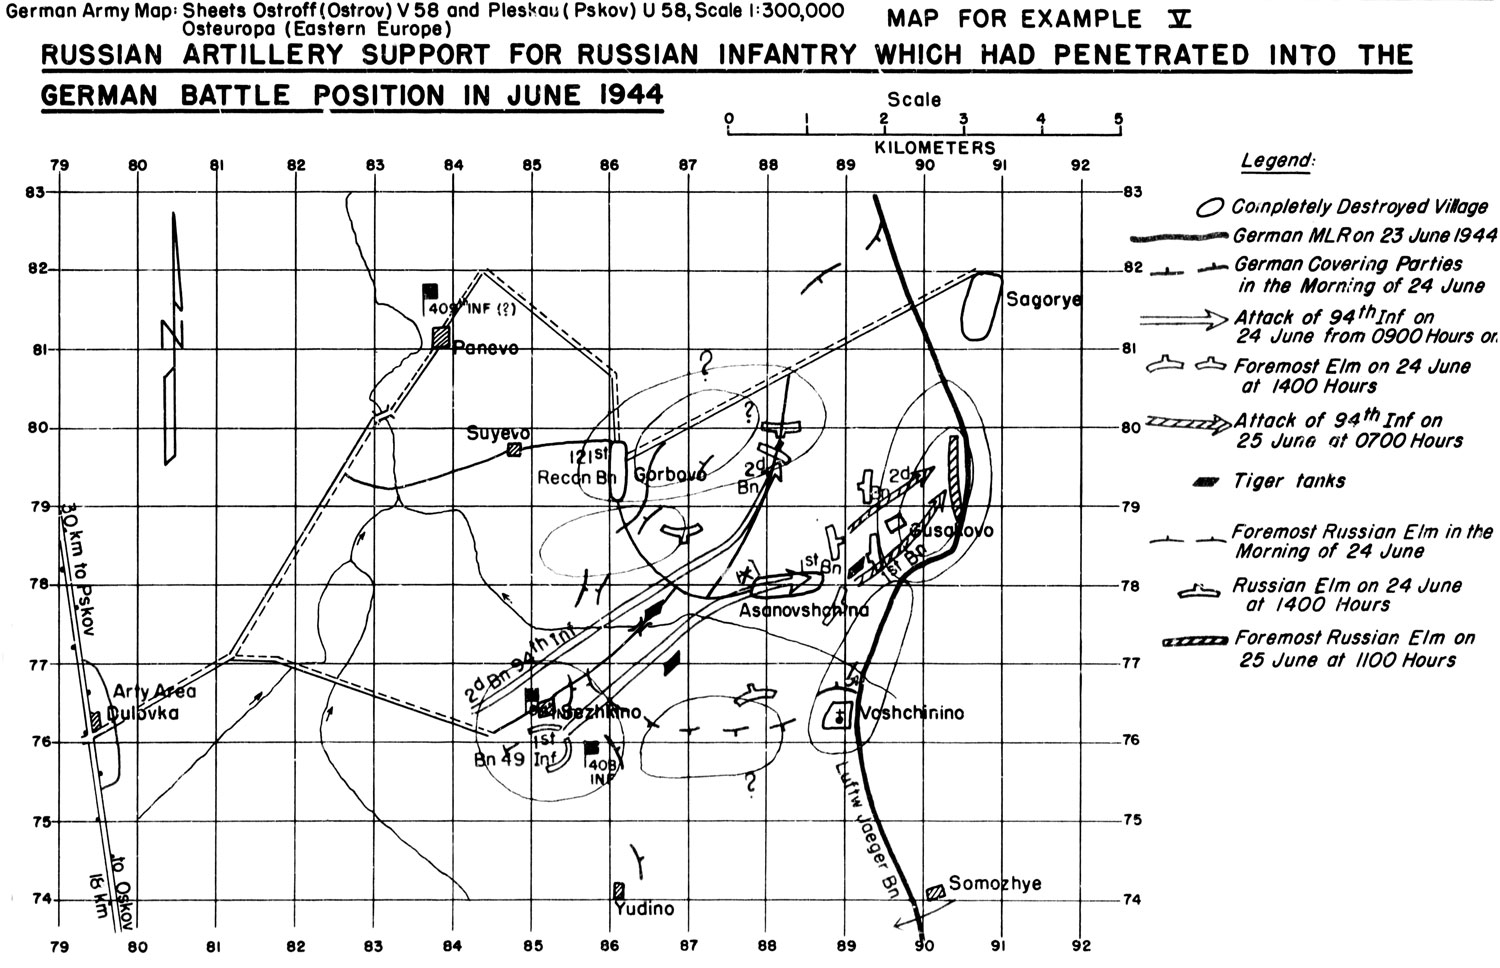 Tactics And Fire Control Of Russian Artillery In 44